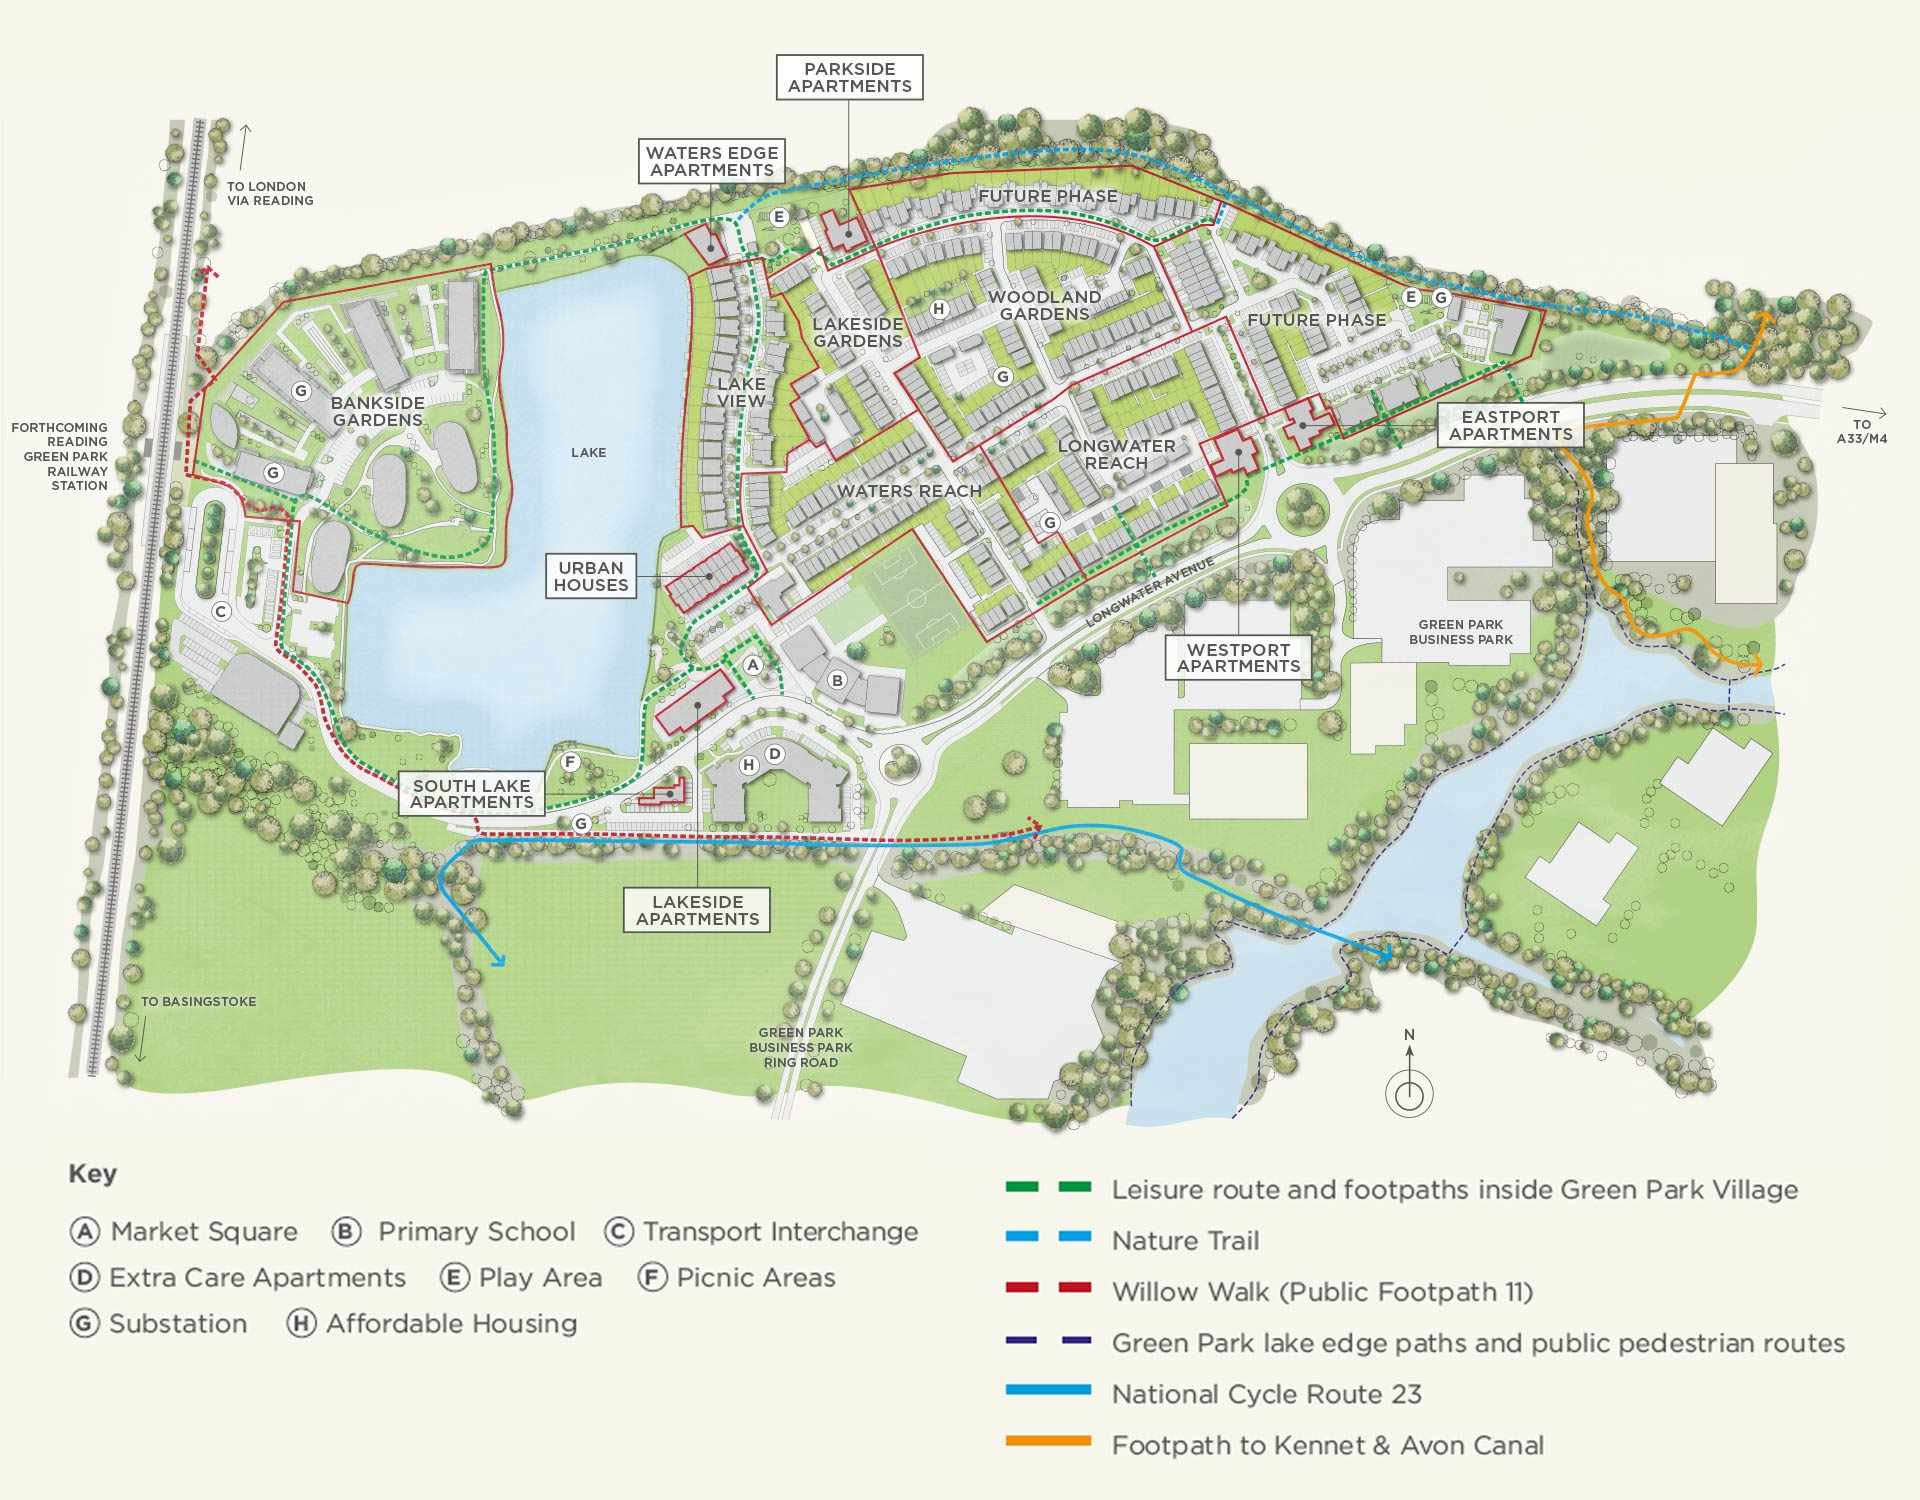 The site layout of Green Park Village near Reading which was the competition project this year.